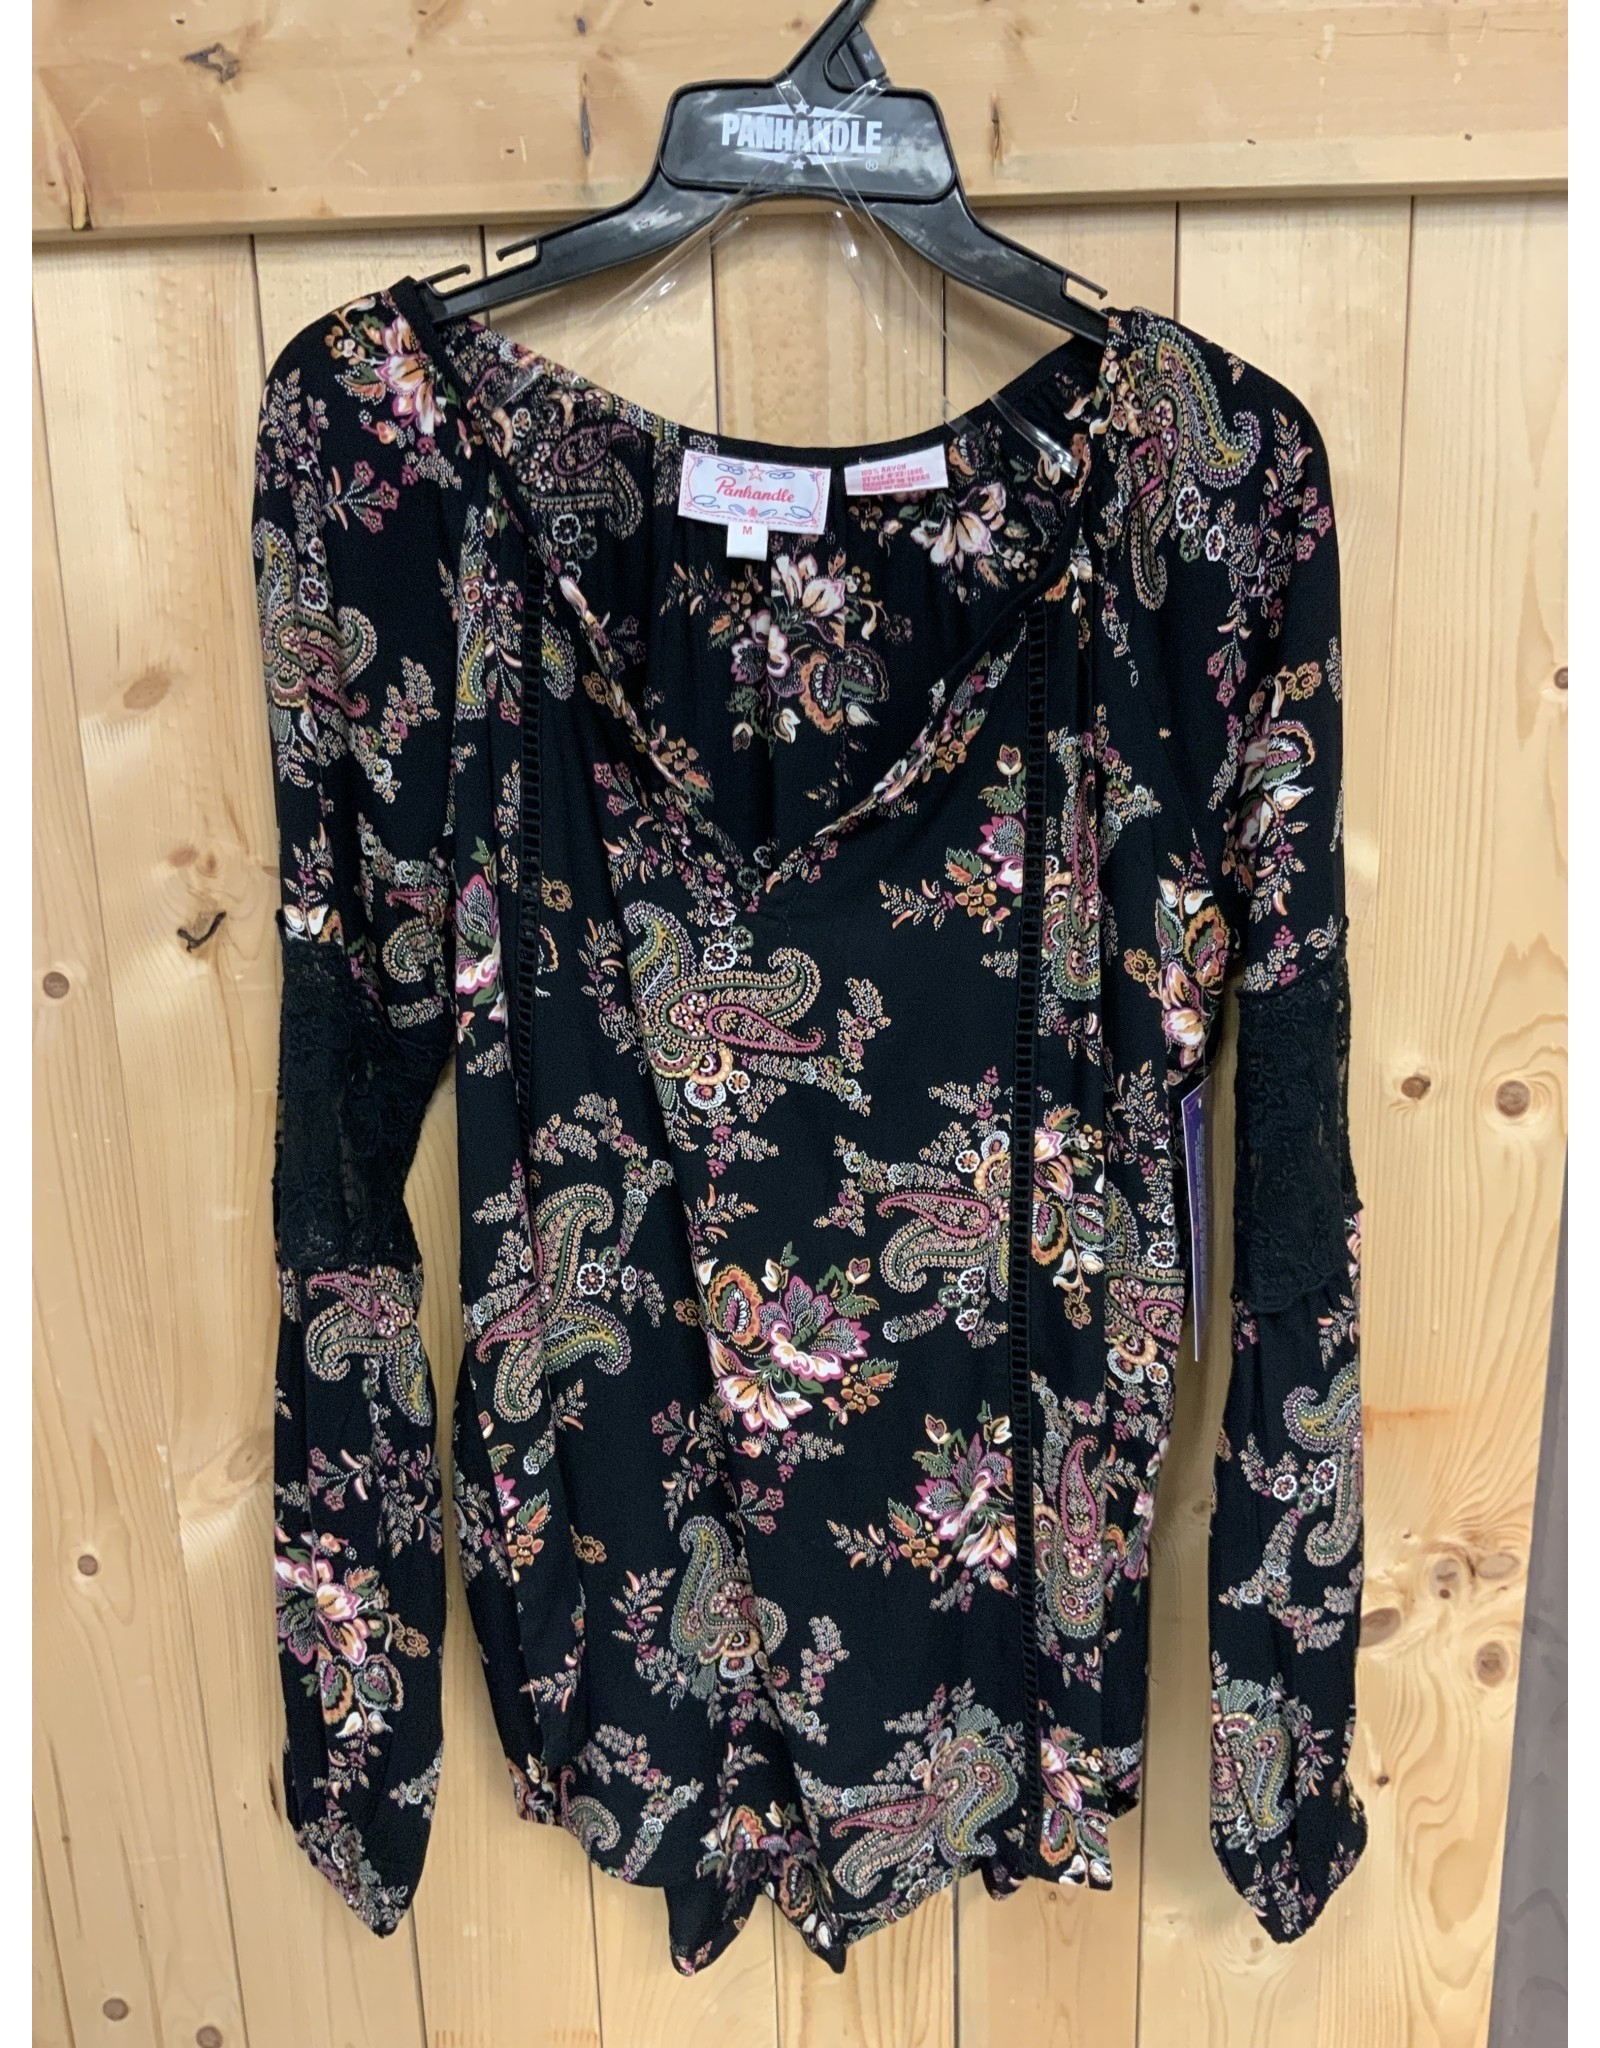 PEASANT L/S BLACK FLOWERED RAYON BLOUSE